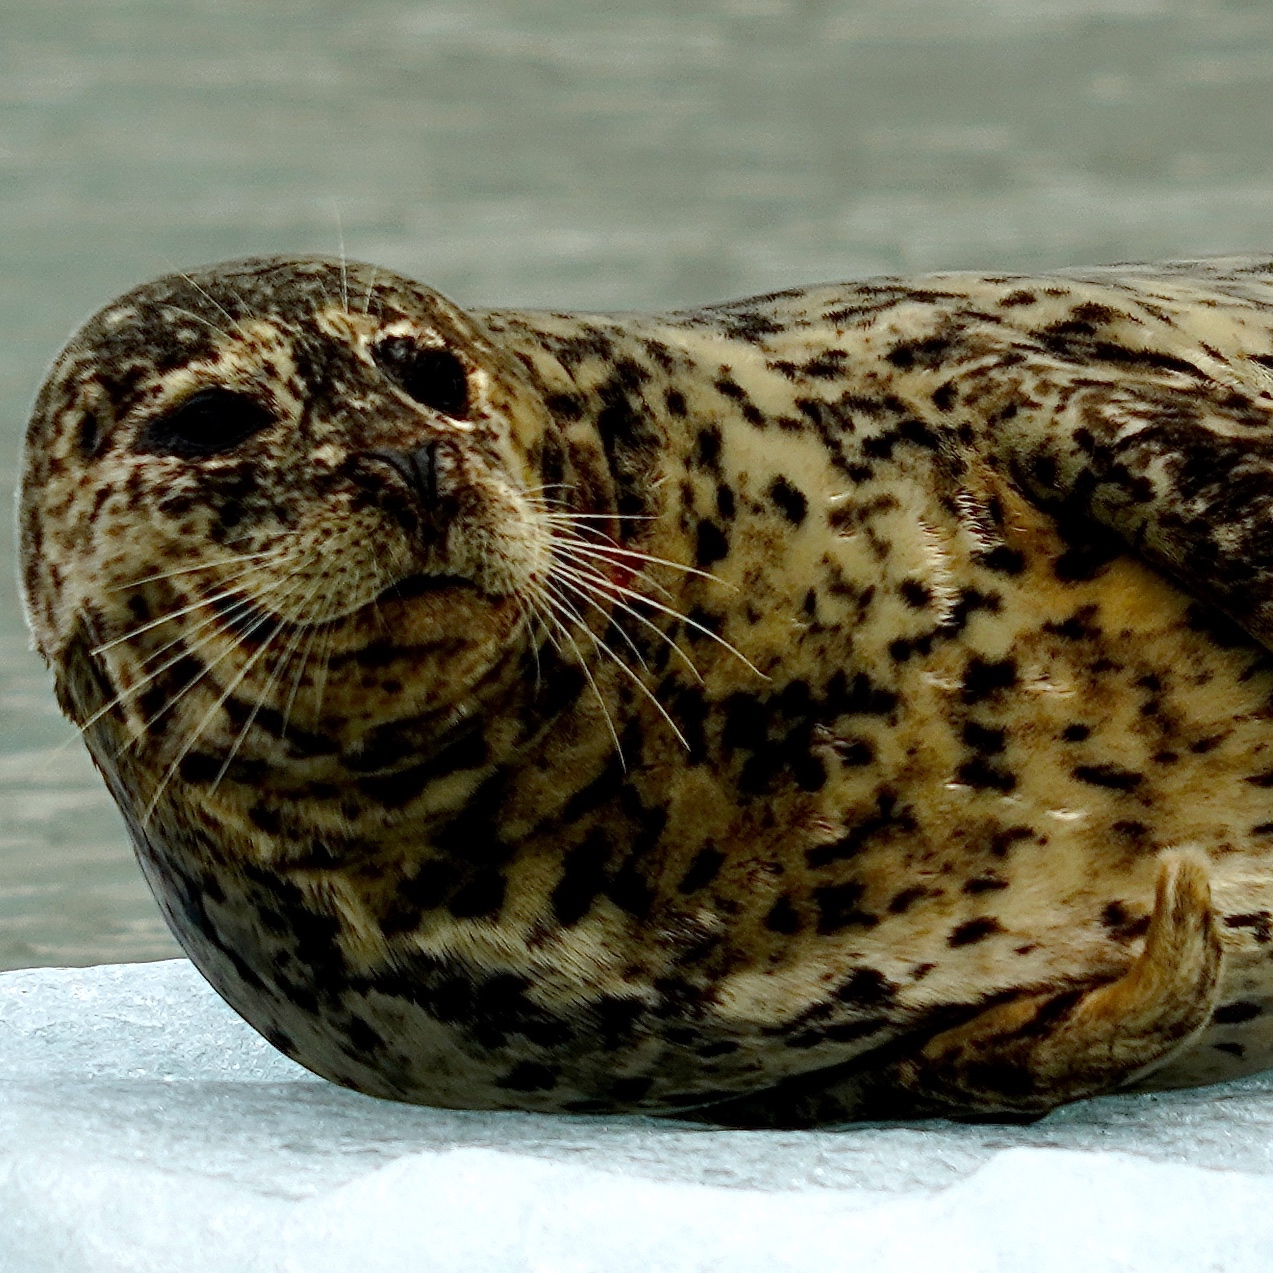 6-27-18 Harbor seal slight turn face CU copy 2.JPG